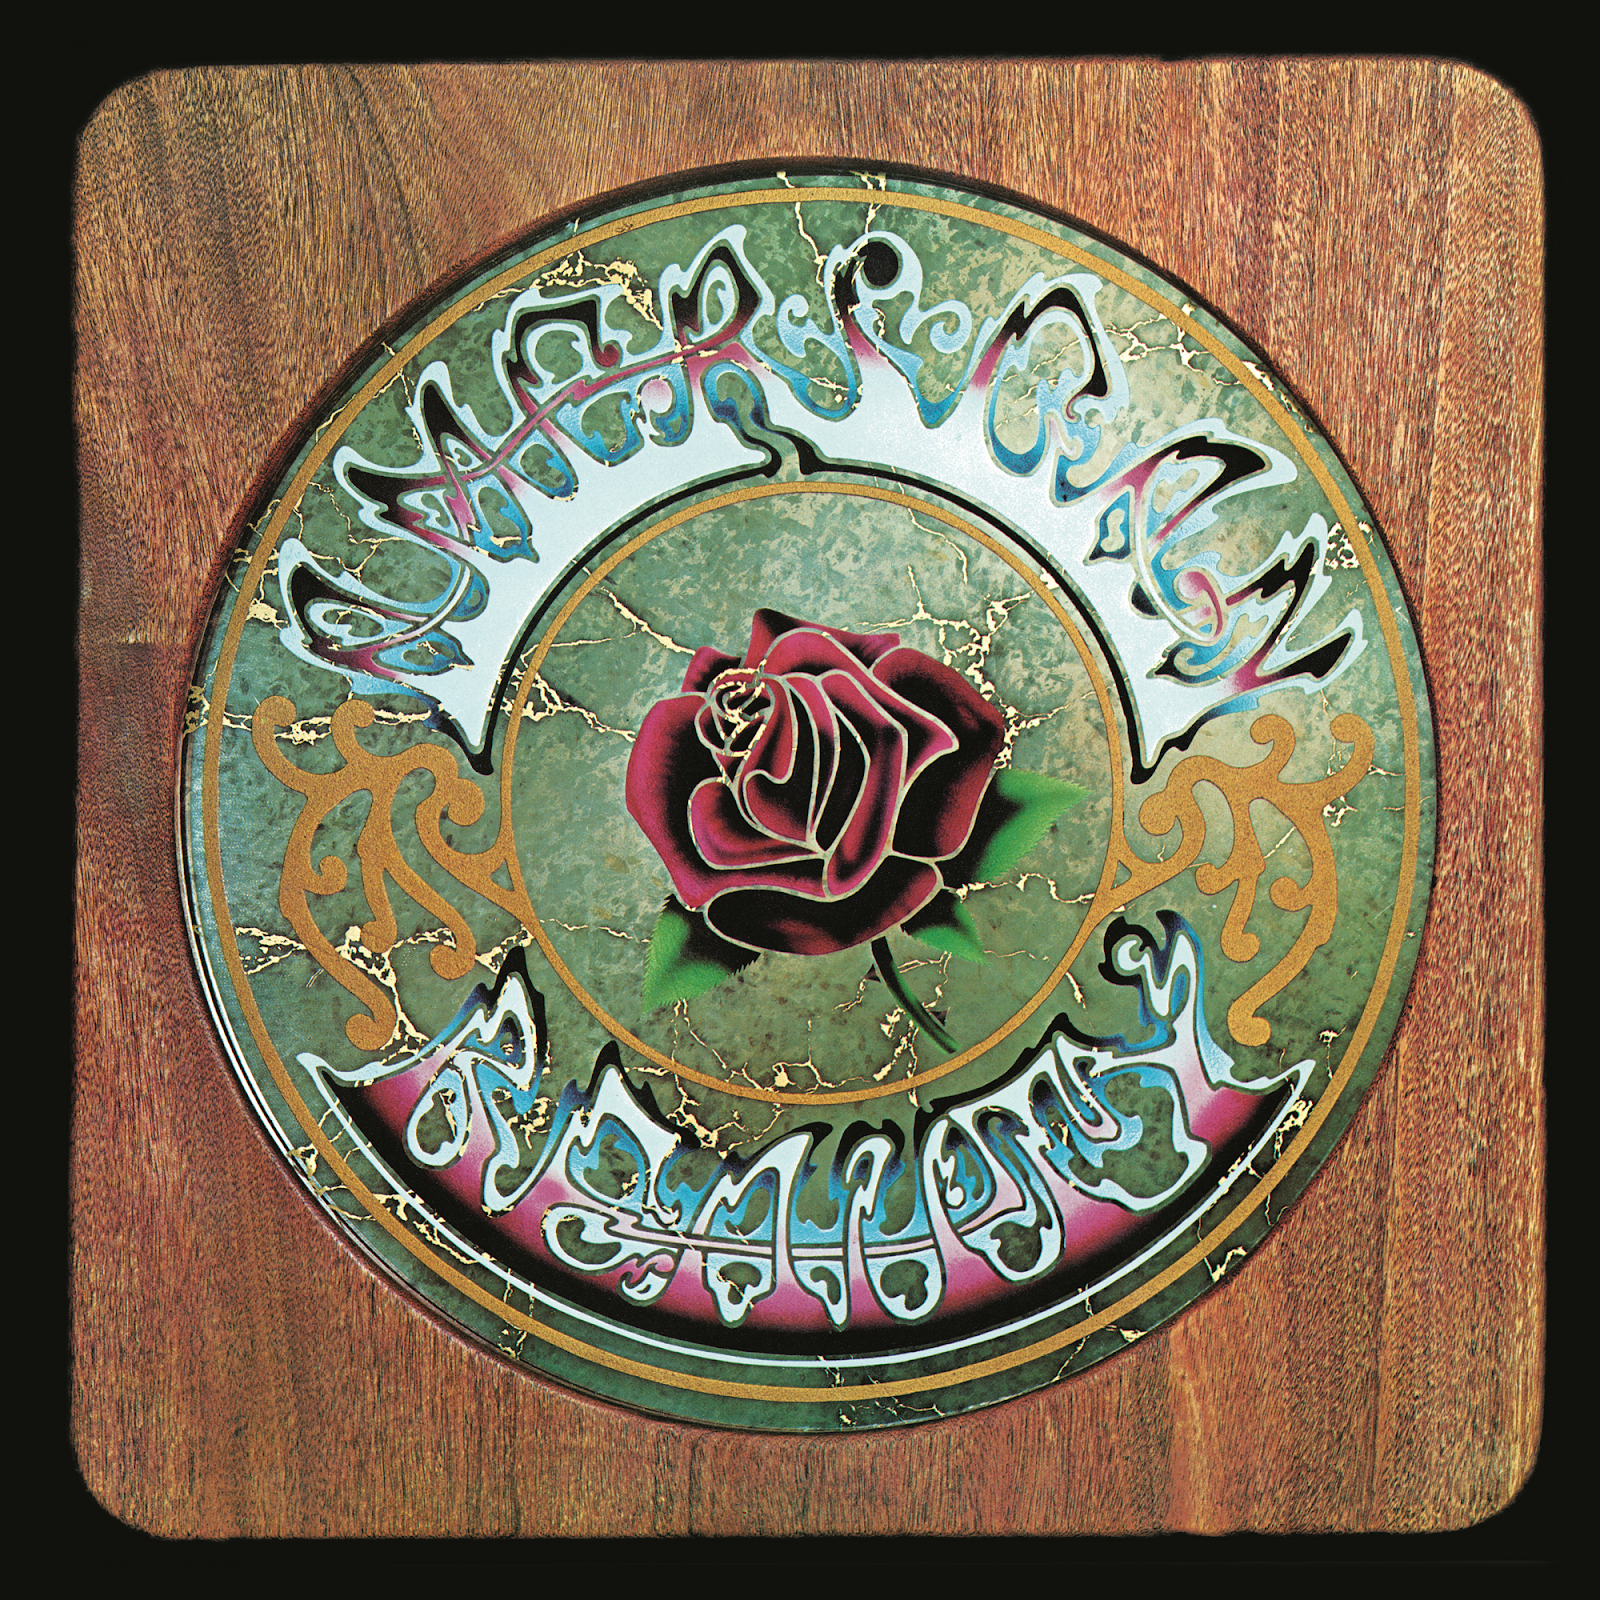 GRATEFUL DEAD release American Beauty: 50th anniversary deluxe edition